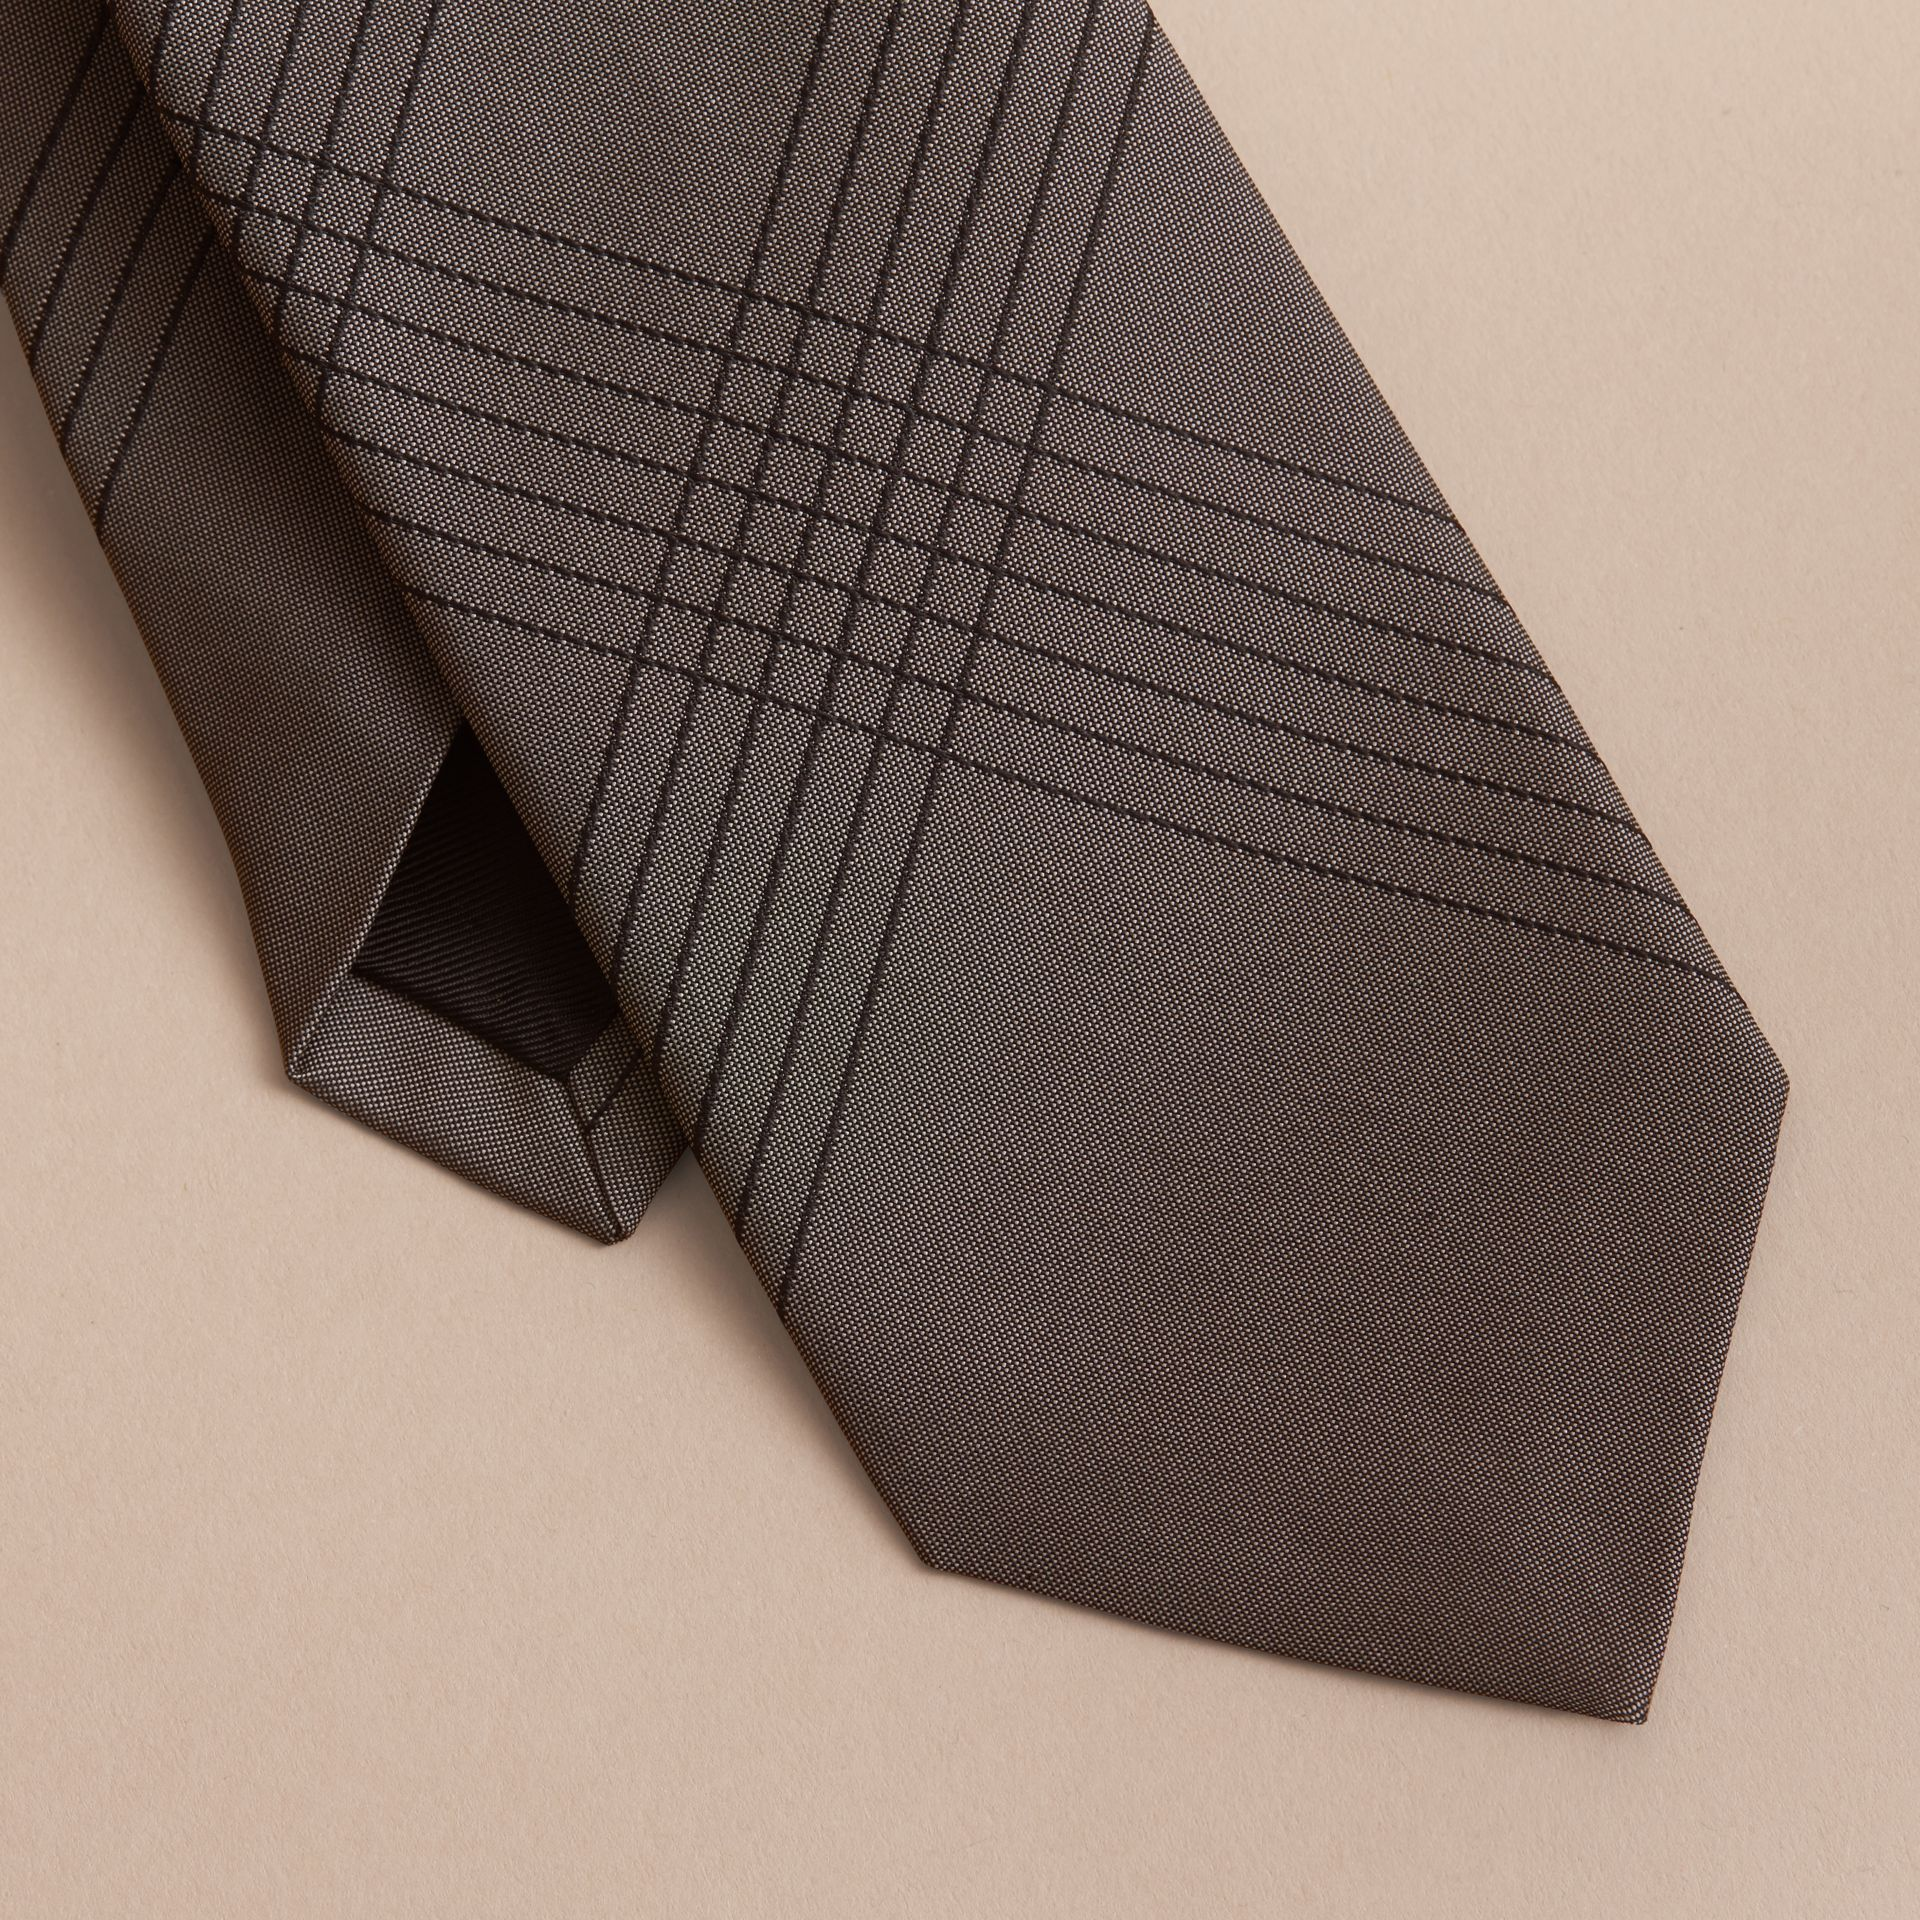 Modern Cut Topstitched Check Silk Tie in Green Grey - Men | Burberry - gallery image 2